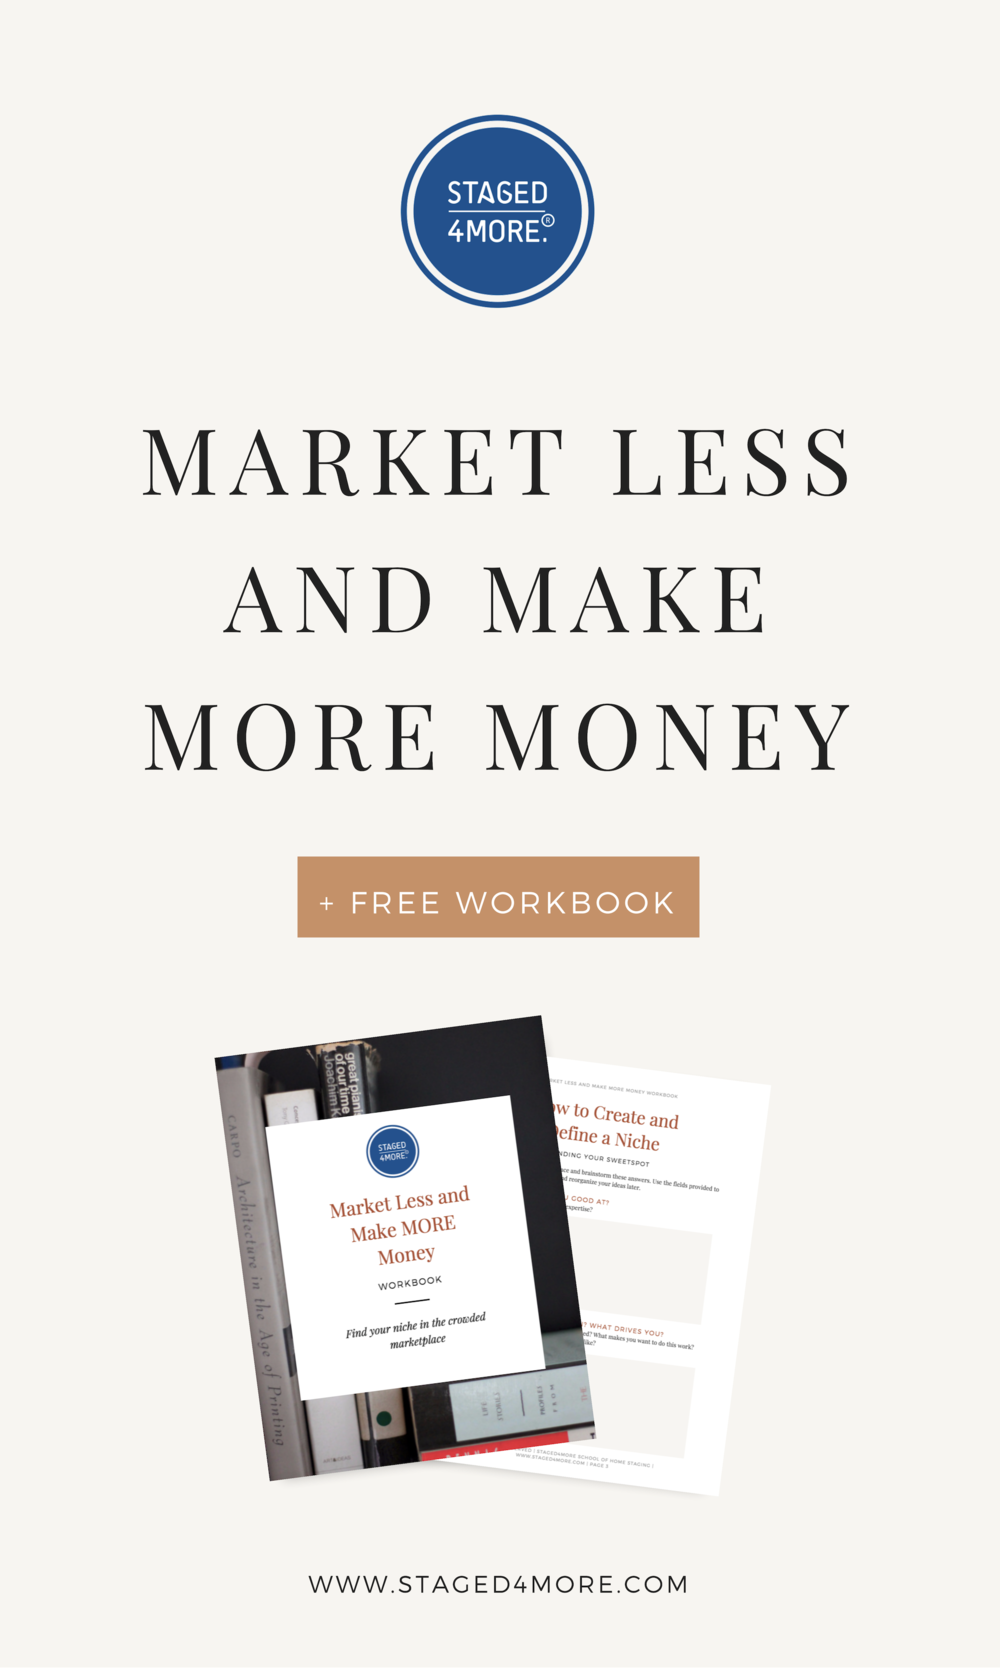 Market Less and Make More Money Niche Workbook by Staged4more School of Home Staging